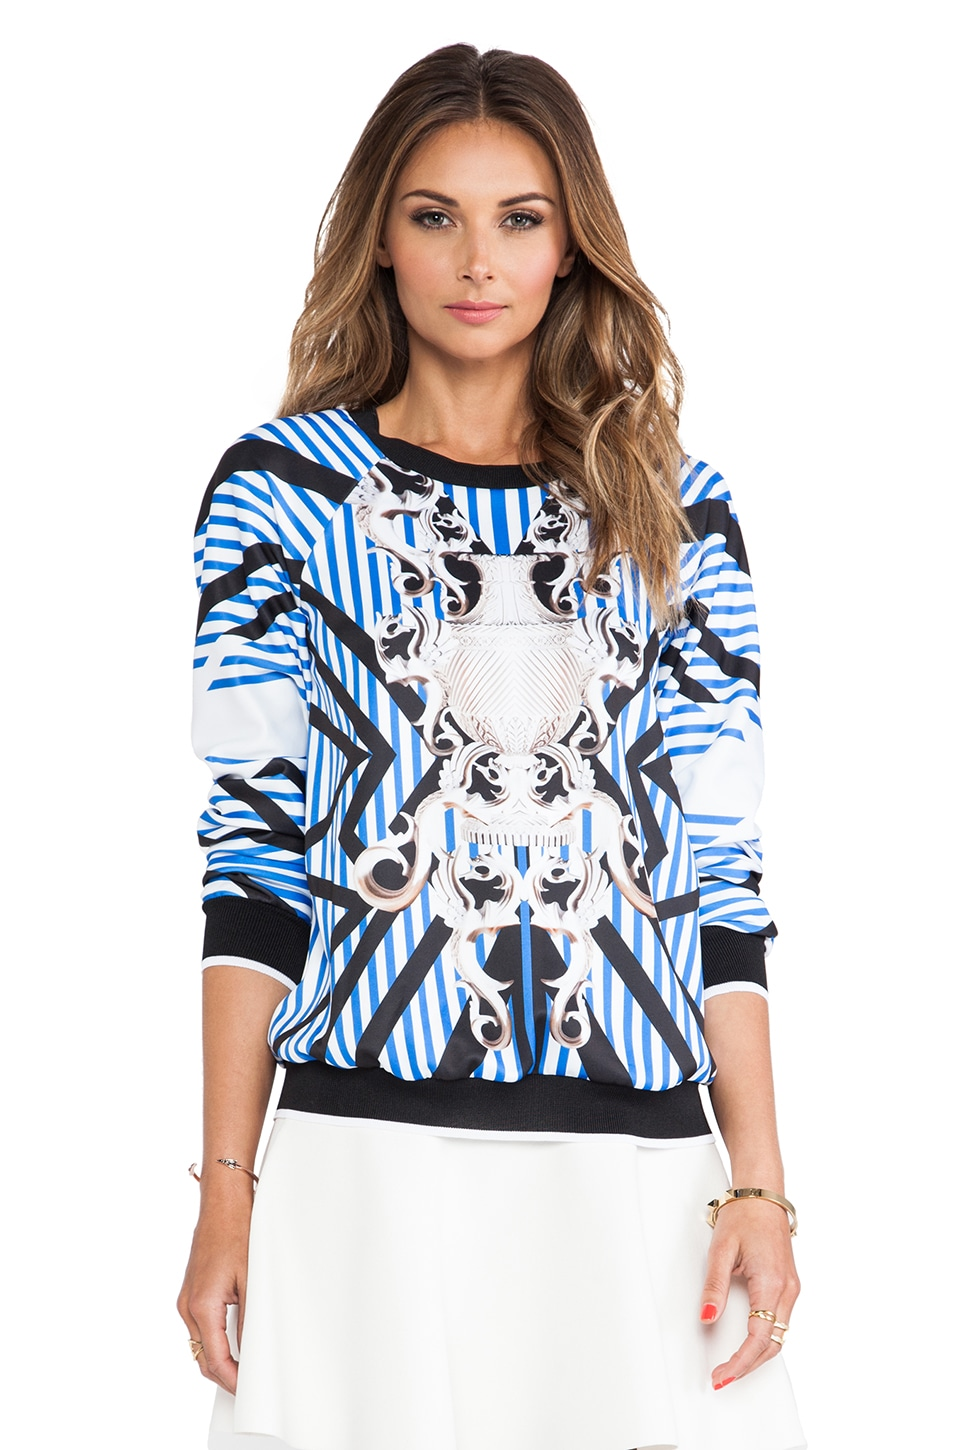 Clover Canyon Striped Sculpture Sweatshirt in Multi